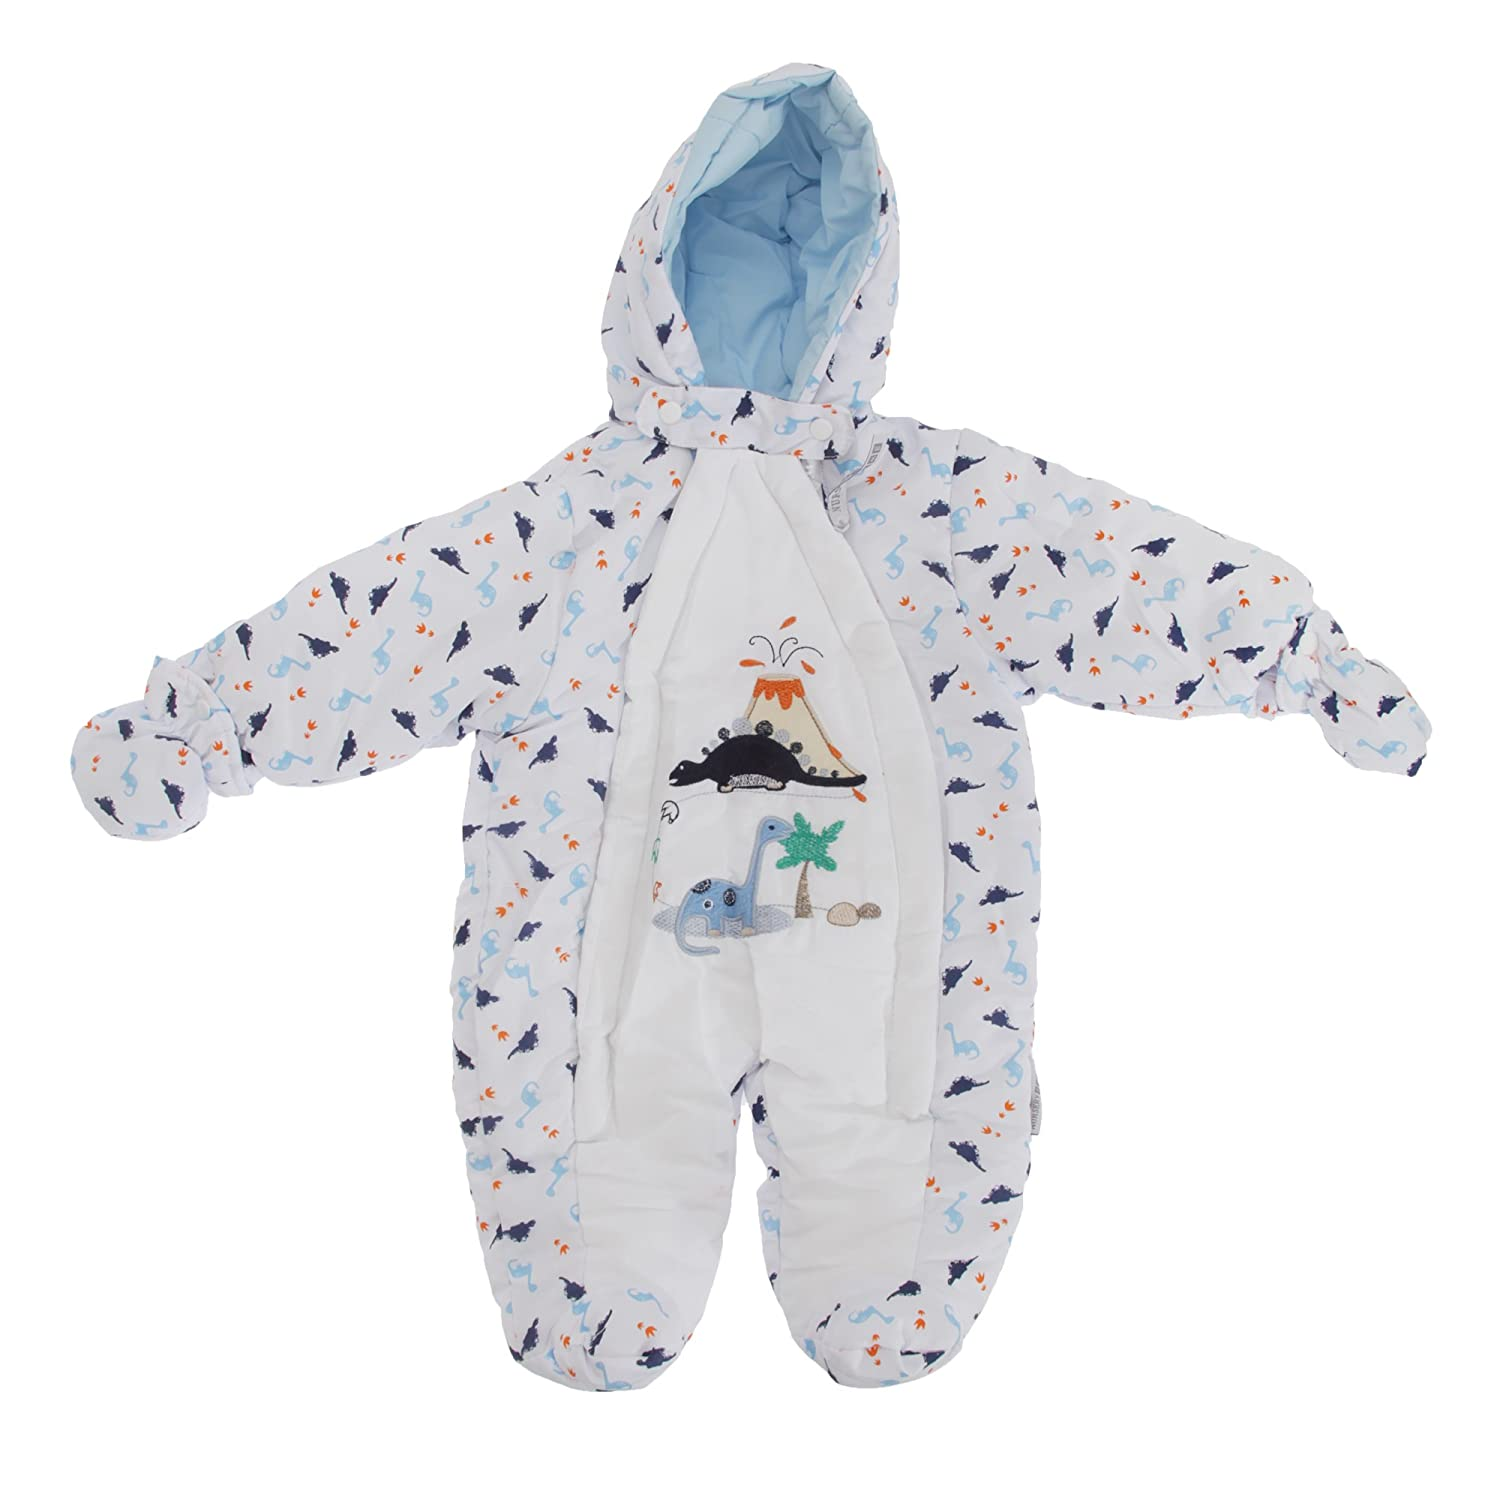 Baby Boys Dinosaur Volcano All In One Hooded Winter Snowsuit (3-6 Months) (White) Universal Textiles UTBABY1003_4